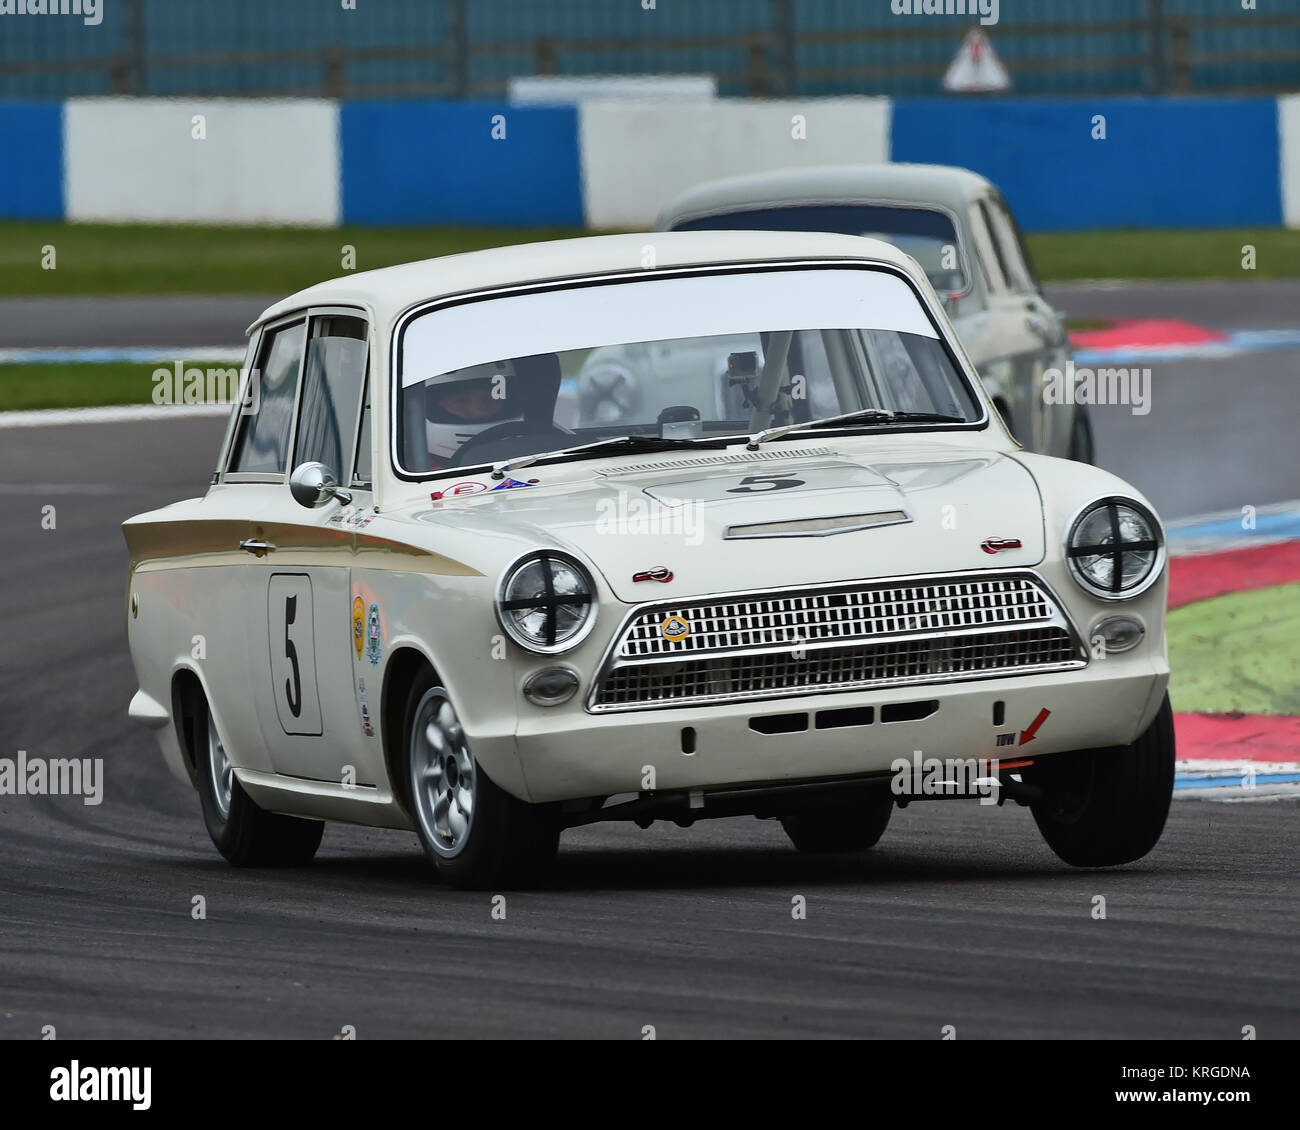 Graeme Kersley, Terry Drury, Ford Lotus Cortina Mk1, HRDC, Coys Trophy, Pre-66 Touring Cars, Donington Historic - Stock Image